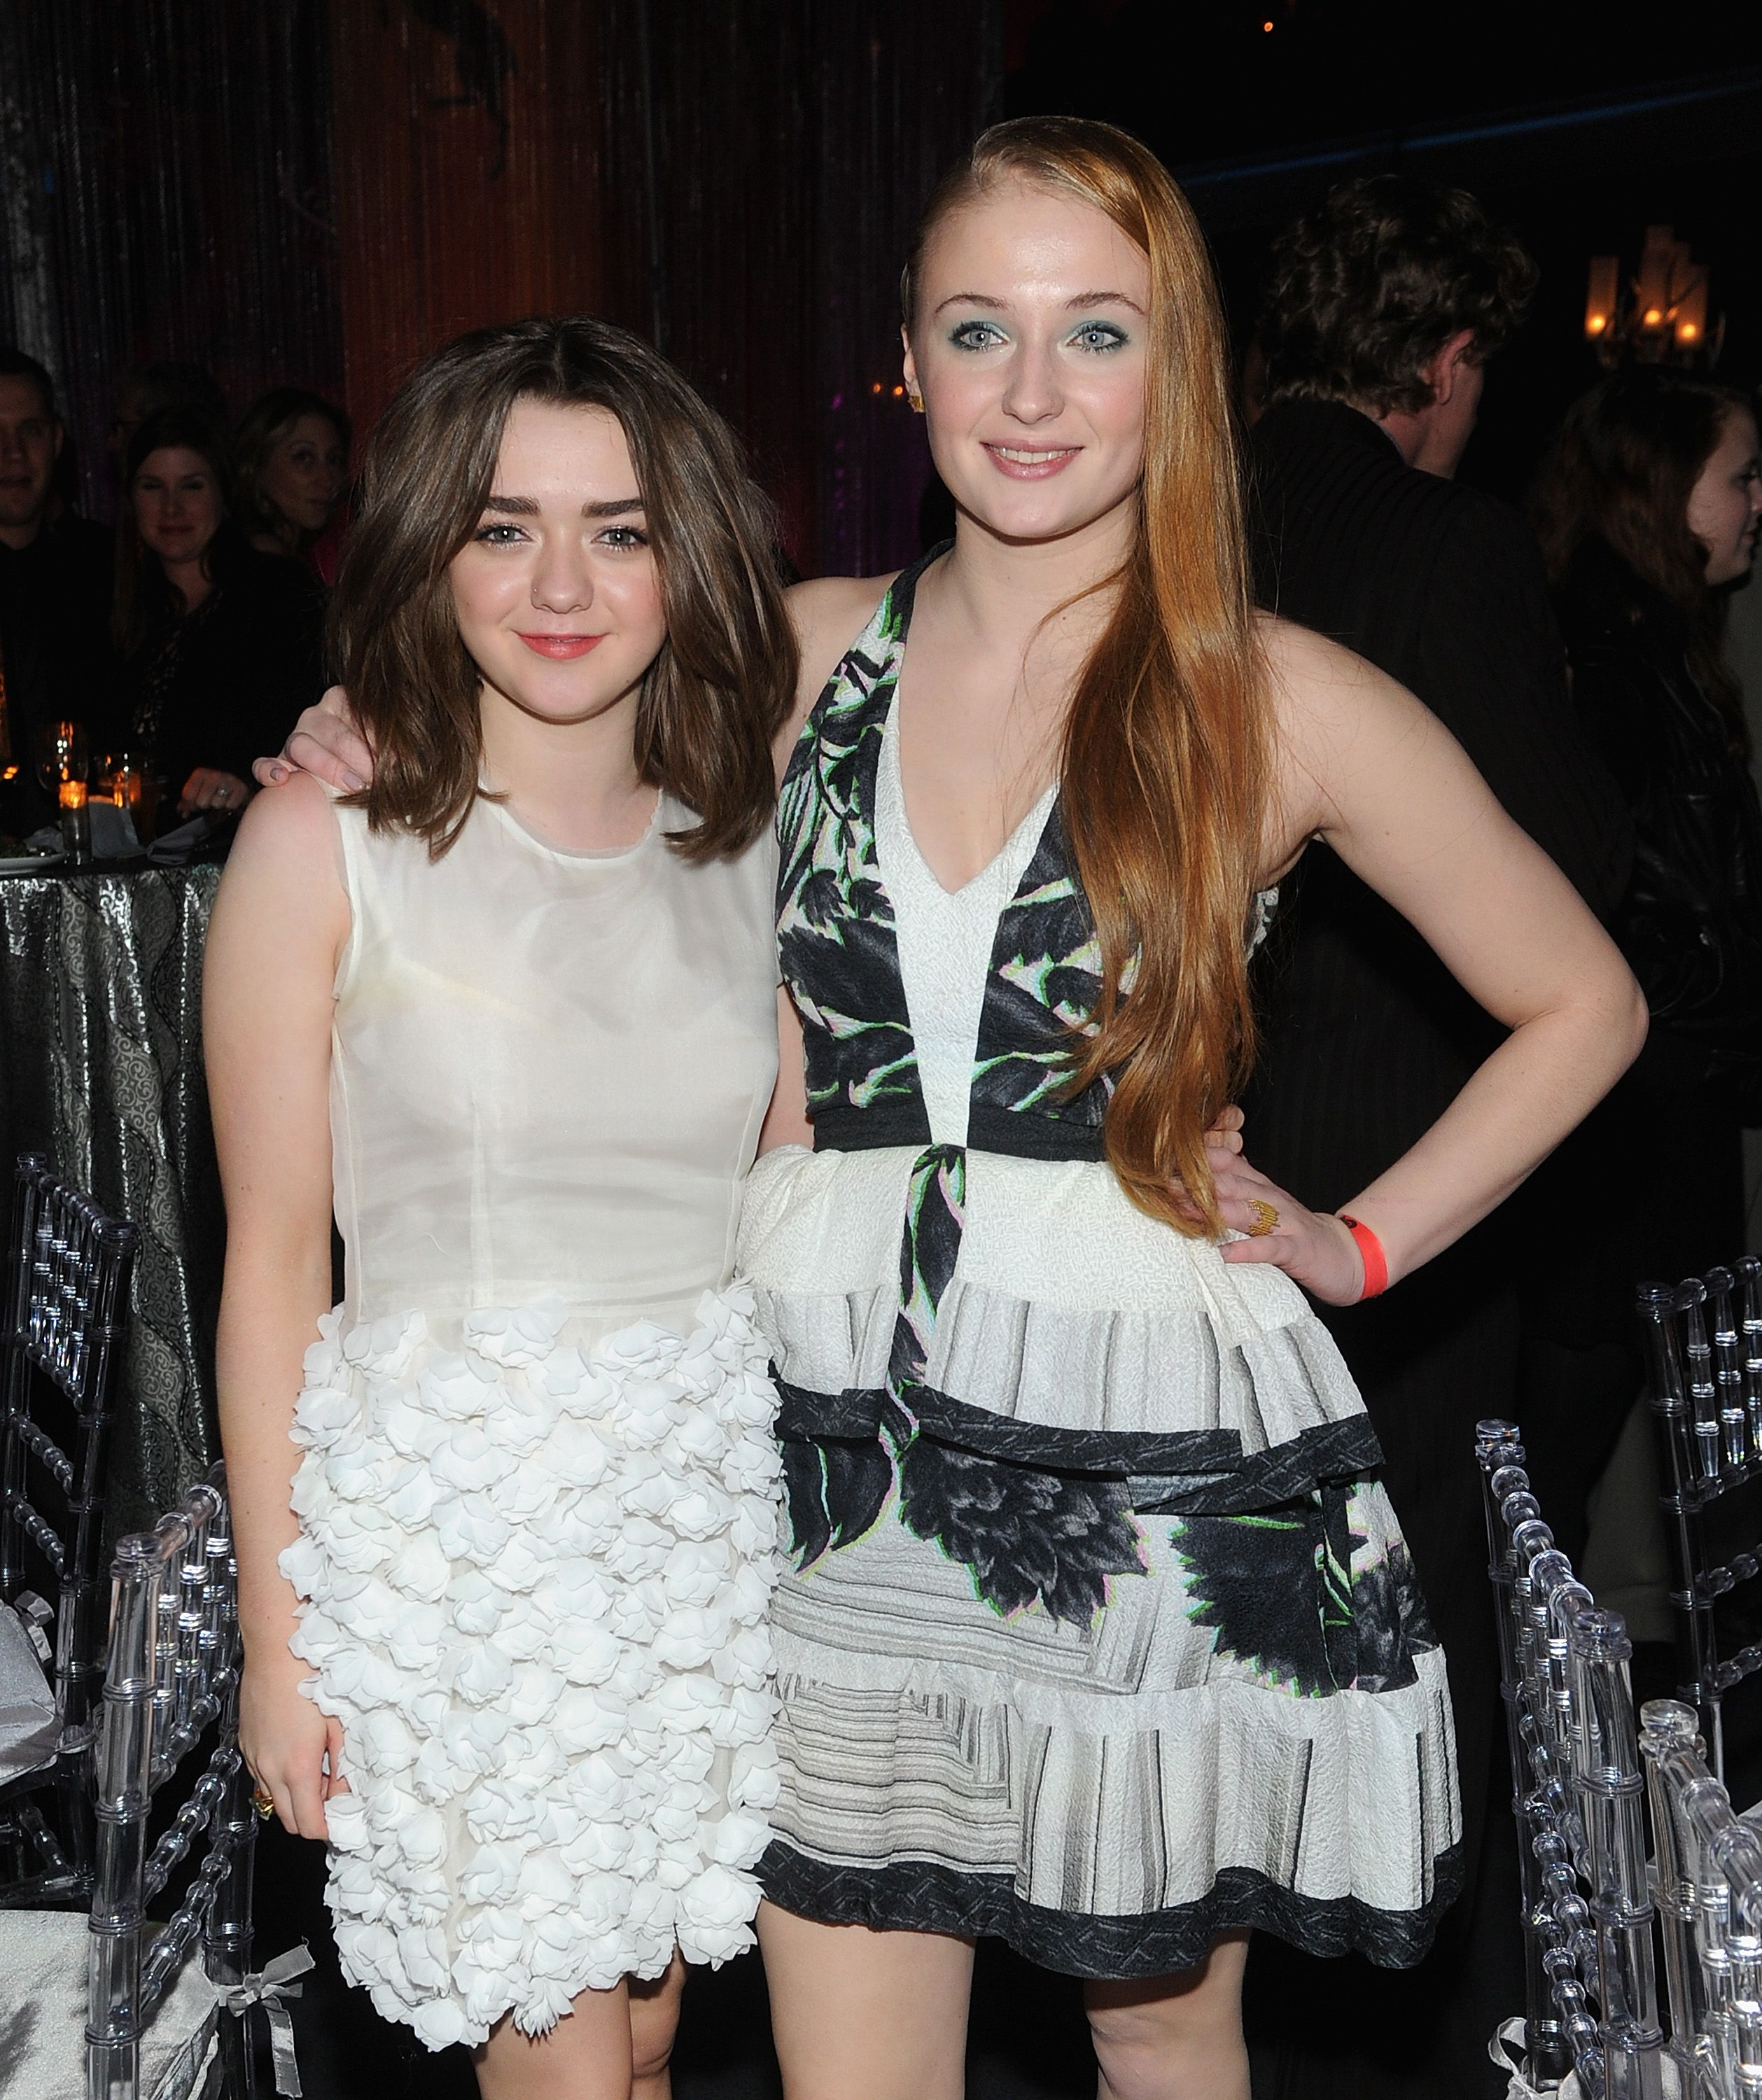 Sophie Turner and Maisie Williams nudes (71 pictures), hot Porno, YouTube, braless 2015